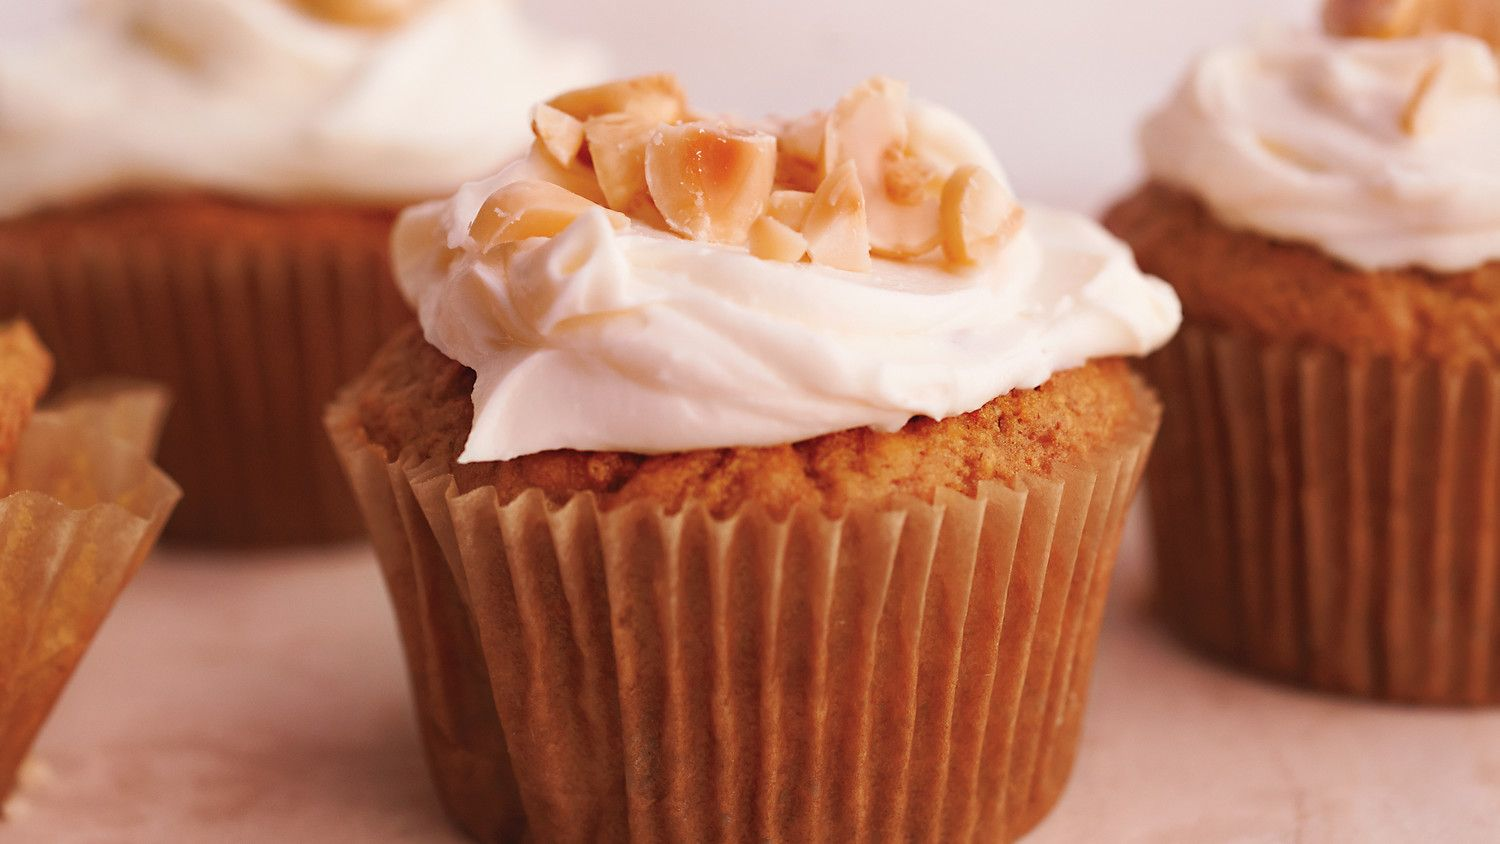 Hazelnut carrotoat cupcakes with creamcheese frosting